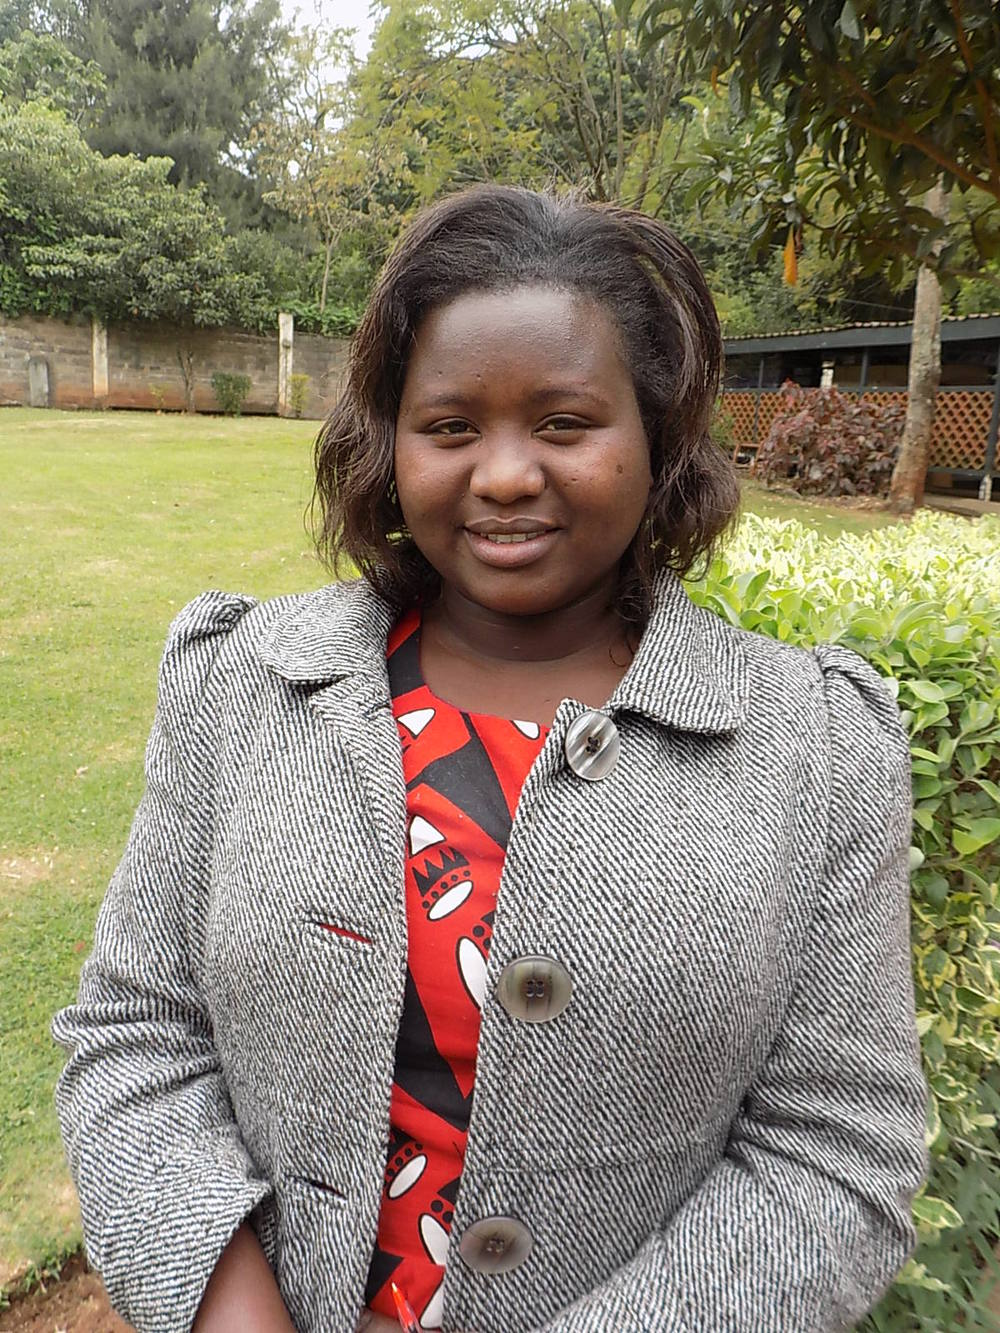 Esther Jepngetich Limo, Level Four Teacher